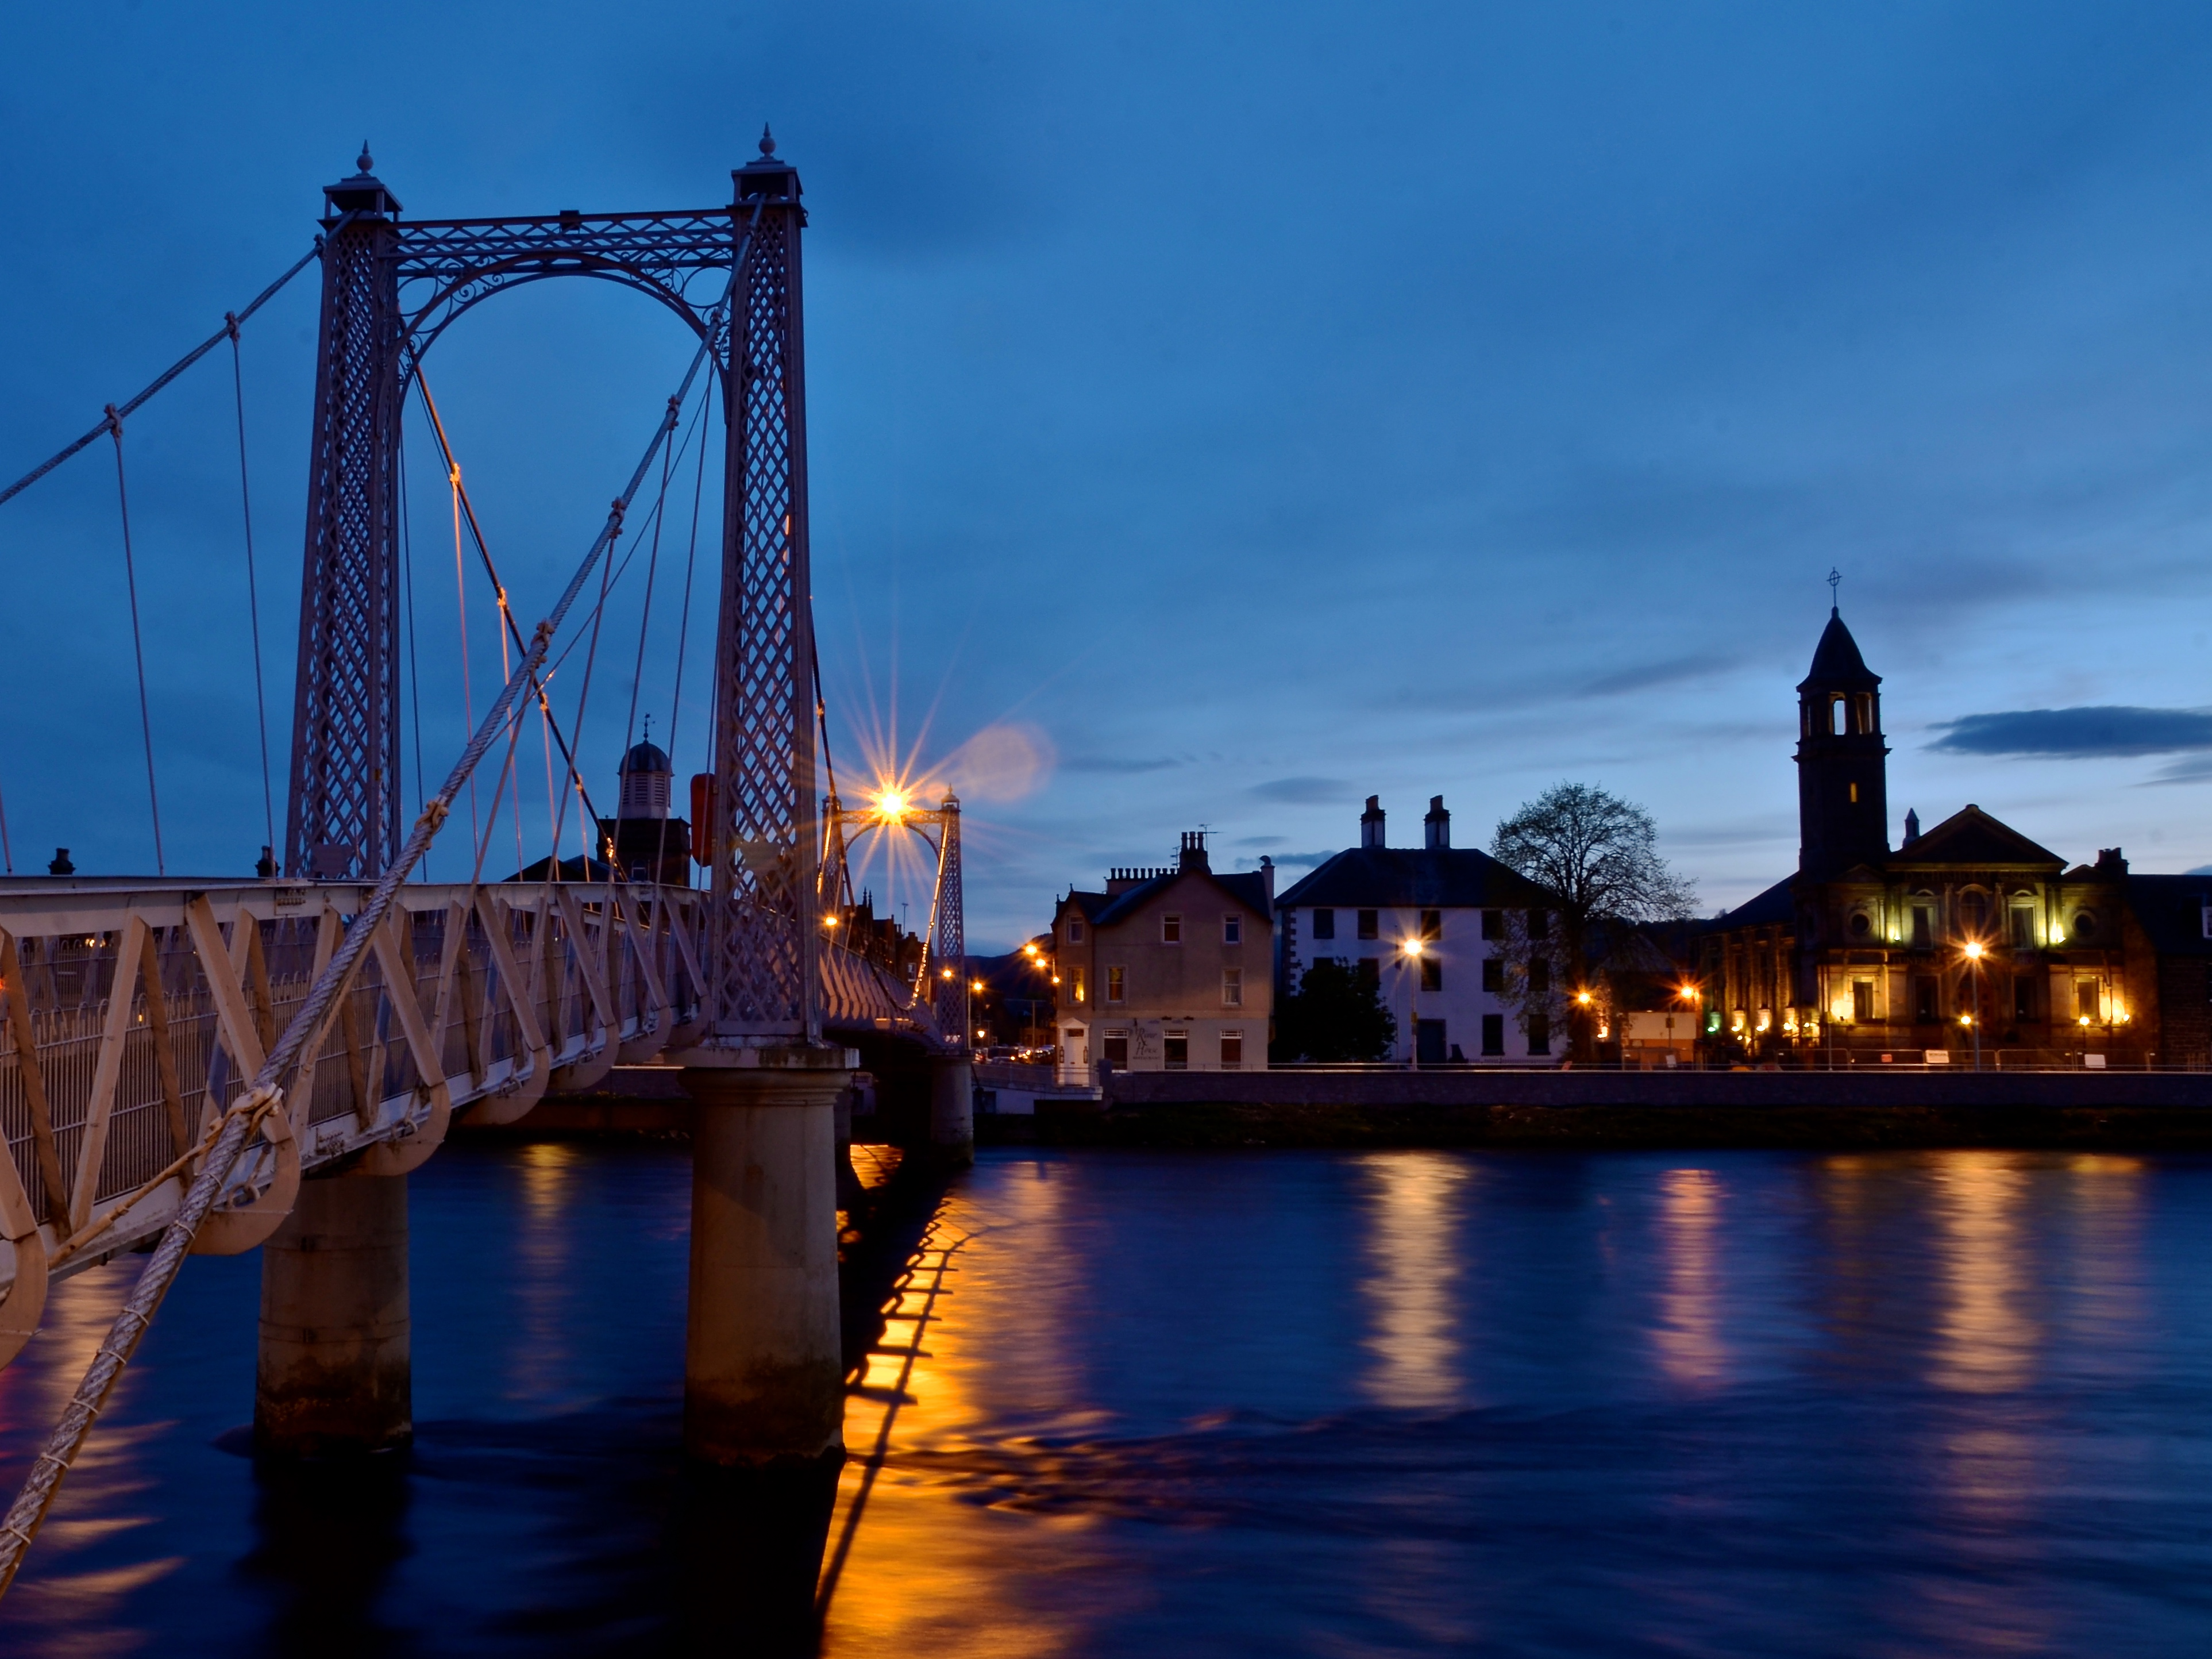 Inverness at Dusk